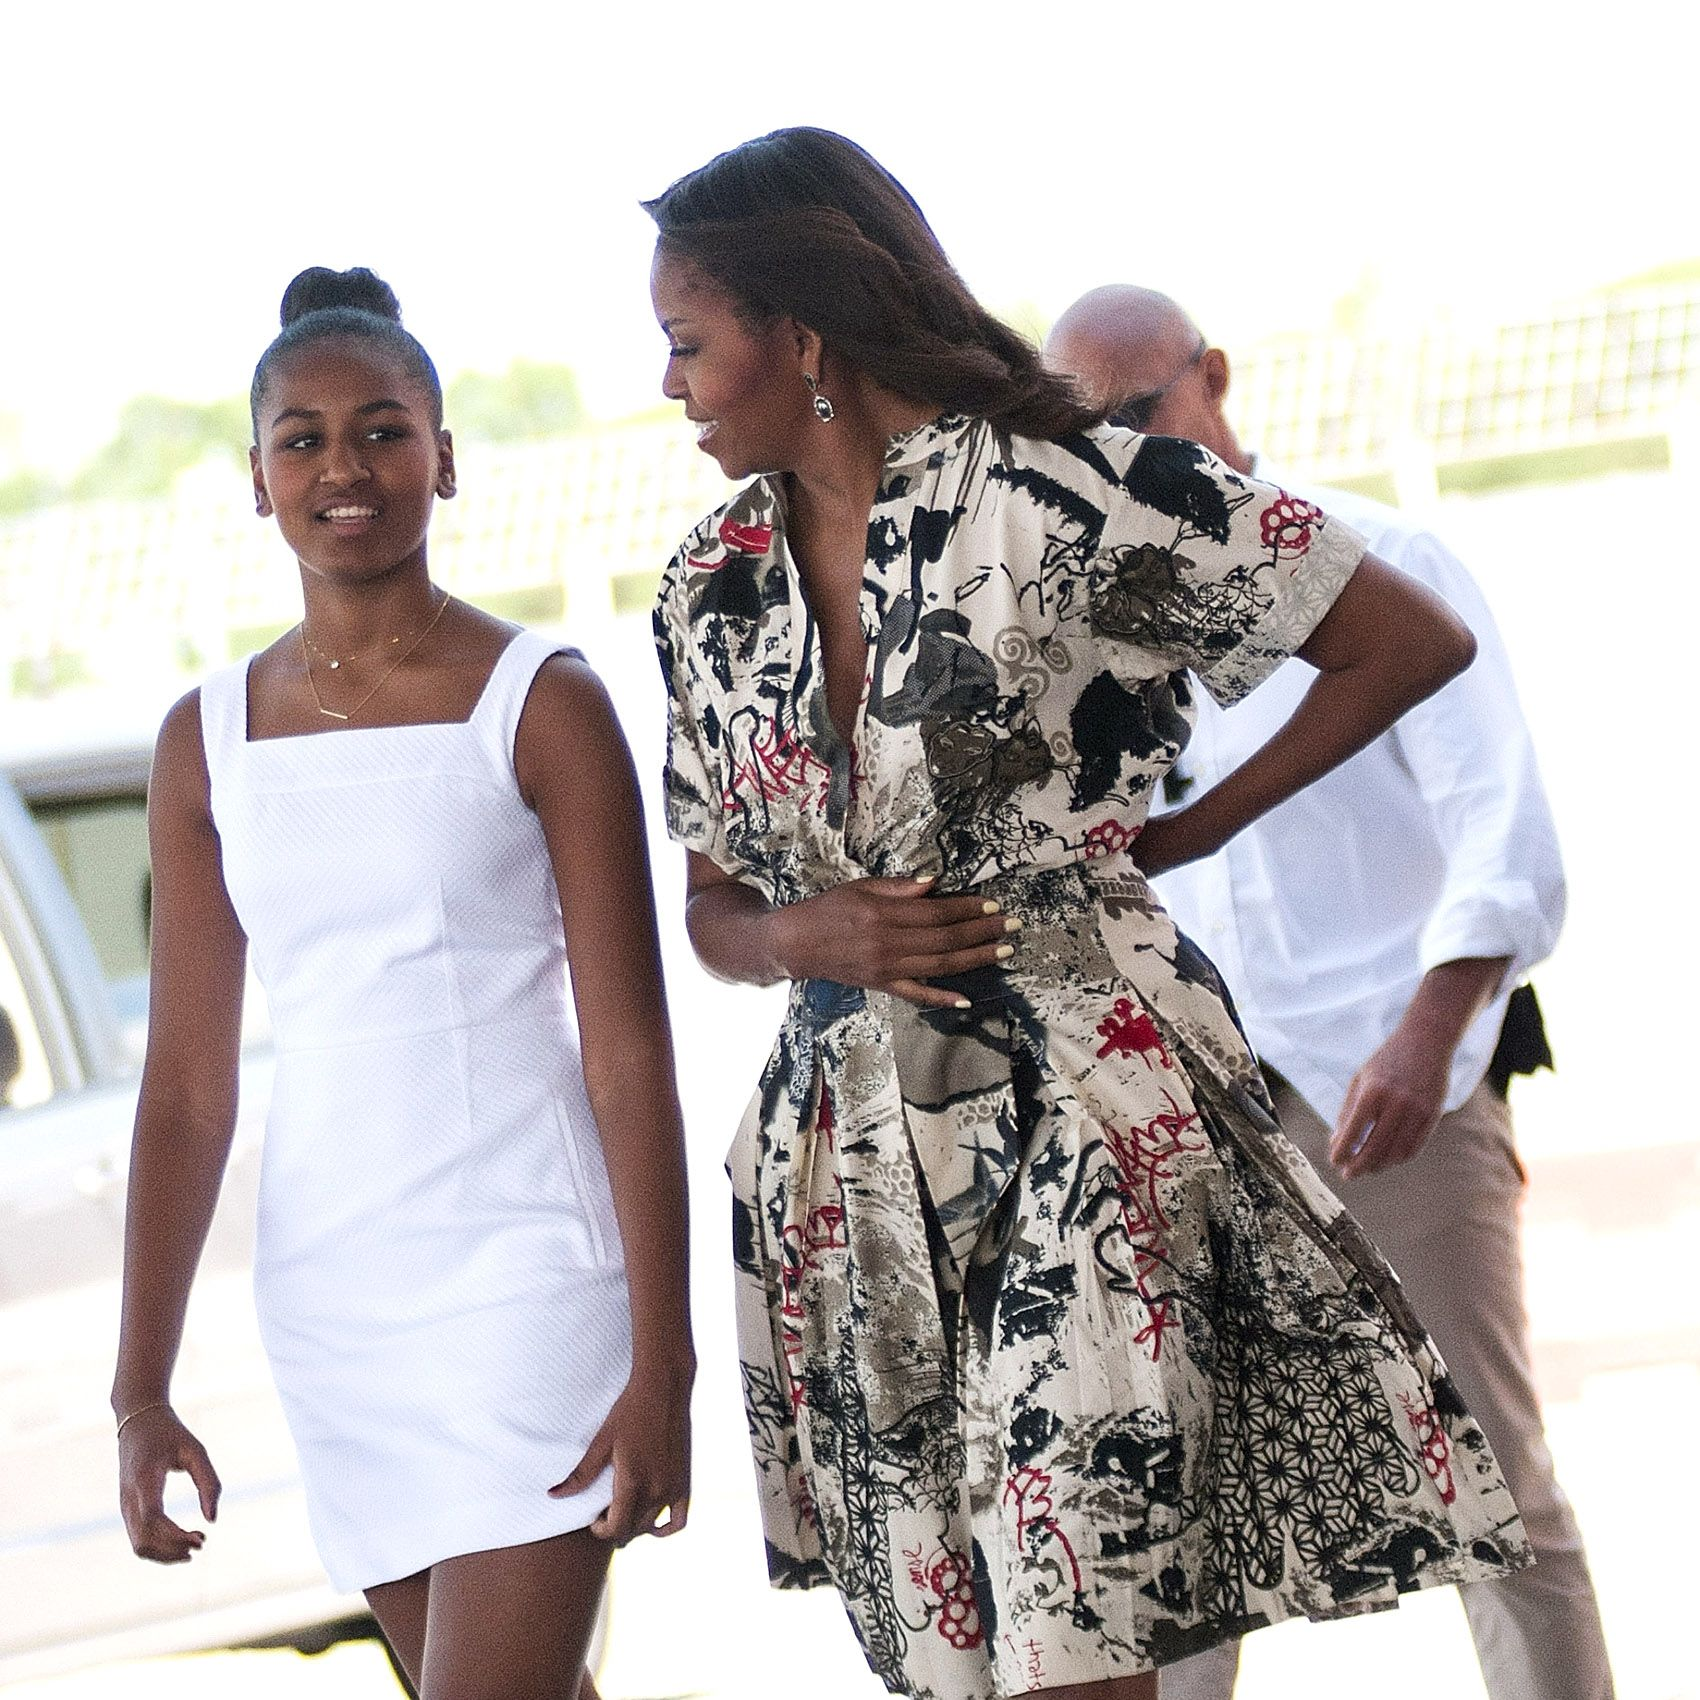 VENICE, ITALY - JUNE 21:  First Lady Michelle Obama leaves with daughters Malia Obama and Sasha Obama (L) on June 21, 2015 in Venice, Italy. Michelle Obama has travelled to Italy where she is expected to speak about her 'Let's Move' initiative to combat childhood obesity.  (Photo by Awakening/Getty Images)